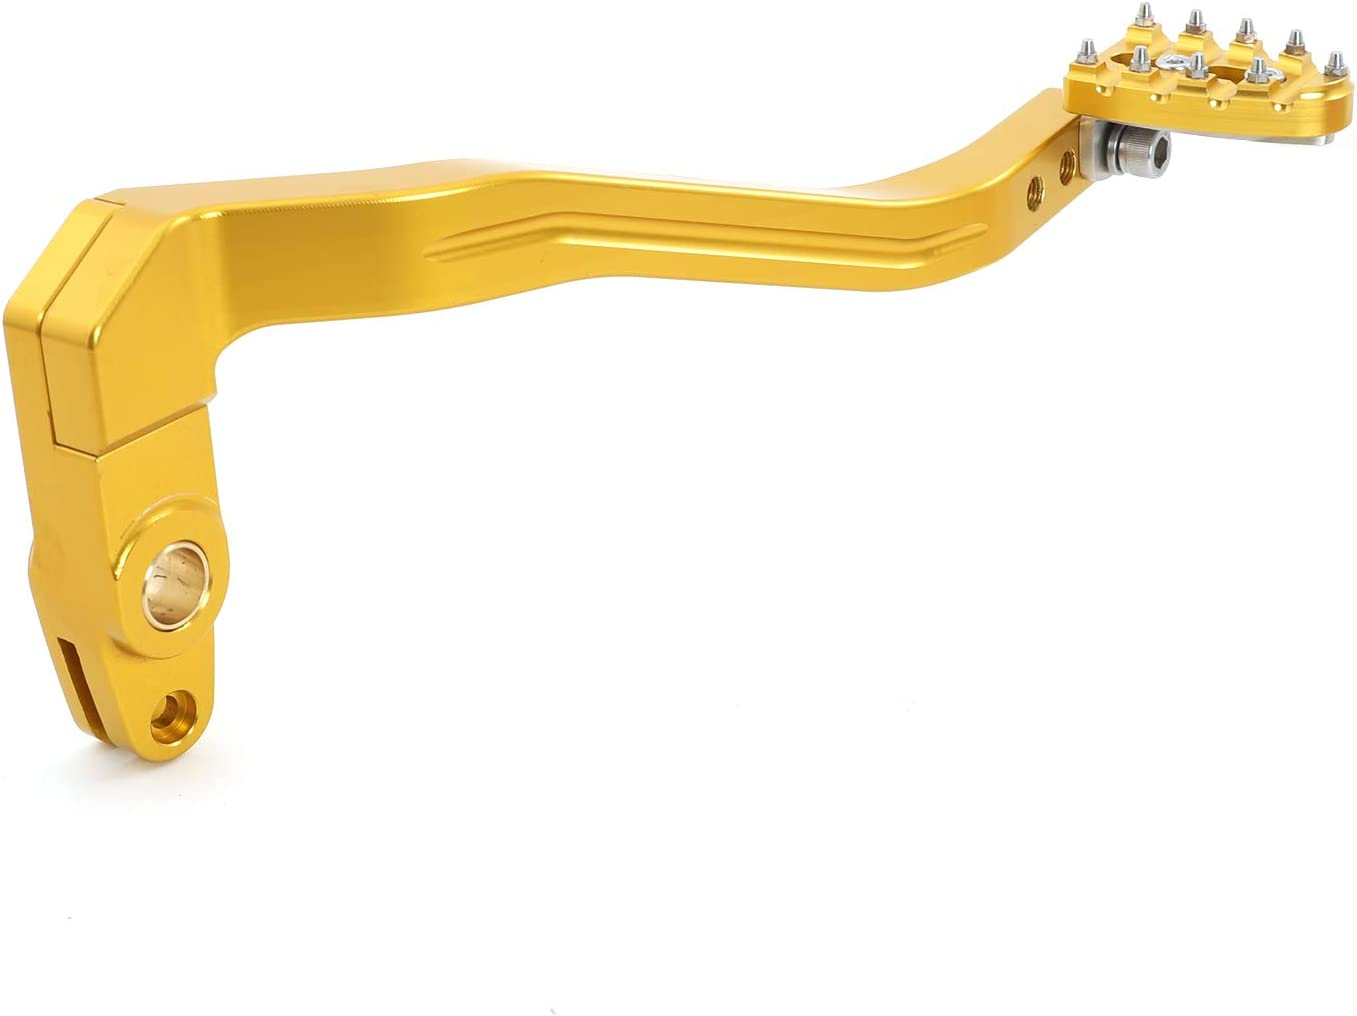 TARAZON Gold Brake Lever Japan's largest assortment Arm + Pedal Max 69% OFF Peg Shifter 1991 for Harley